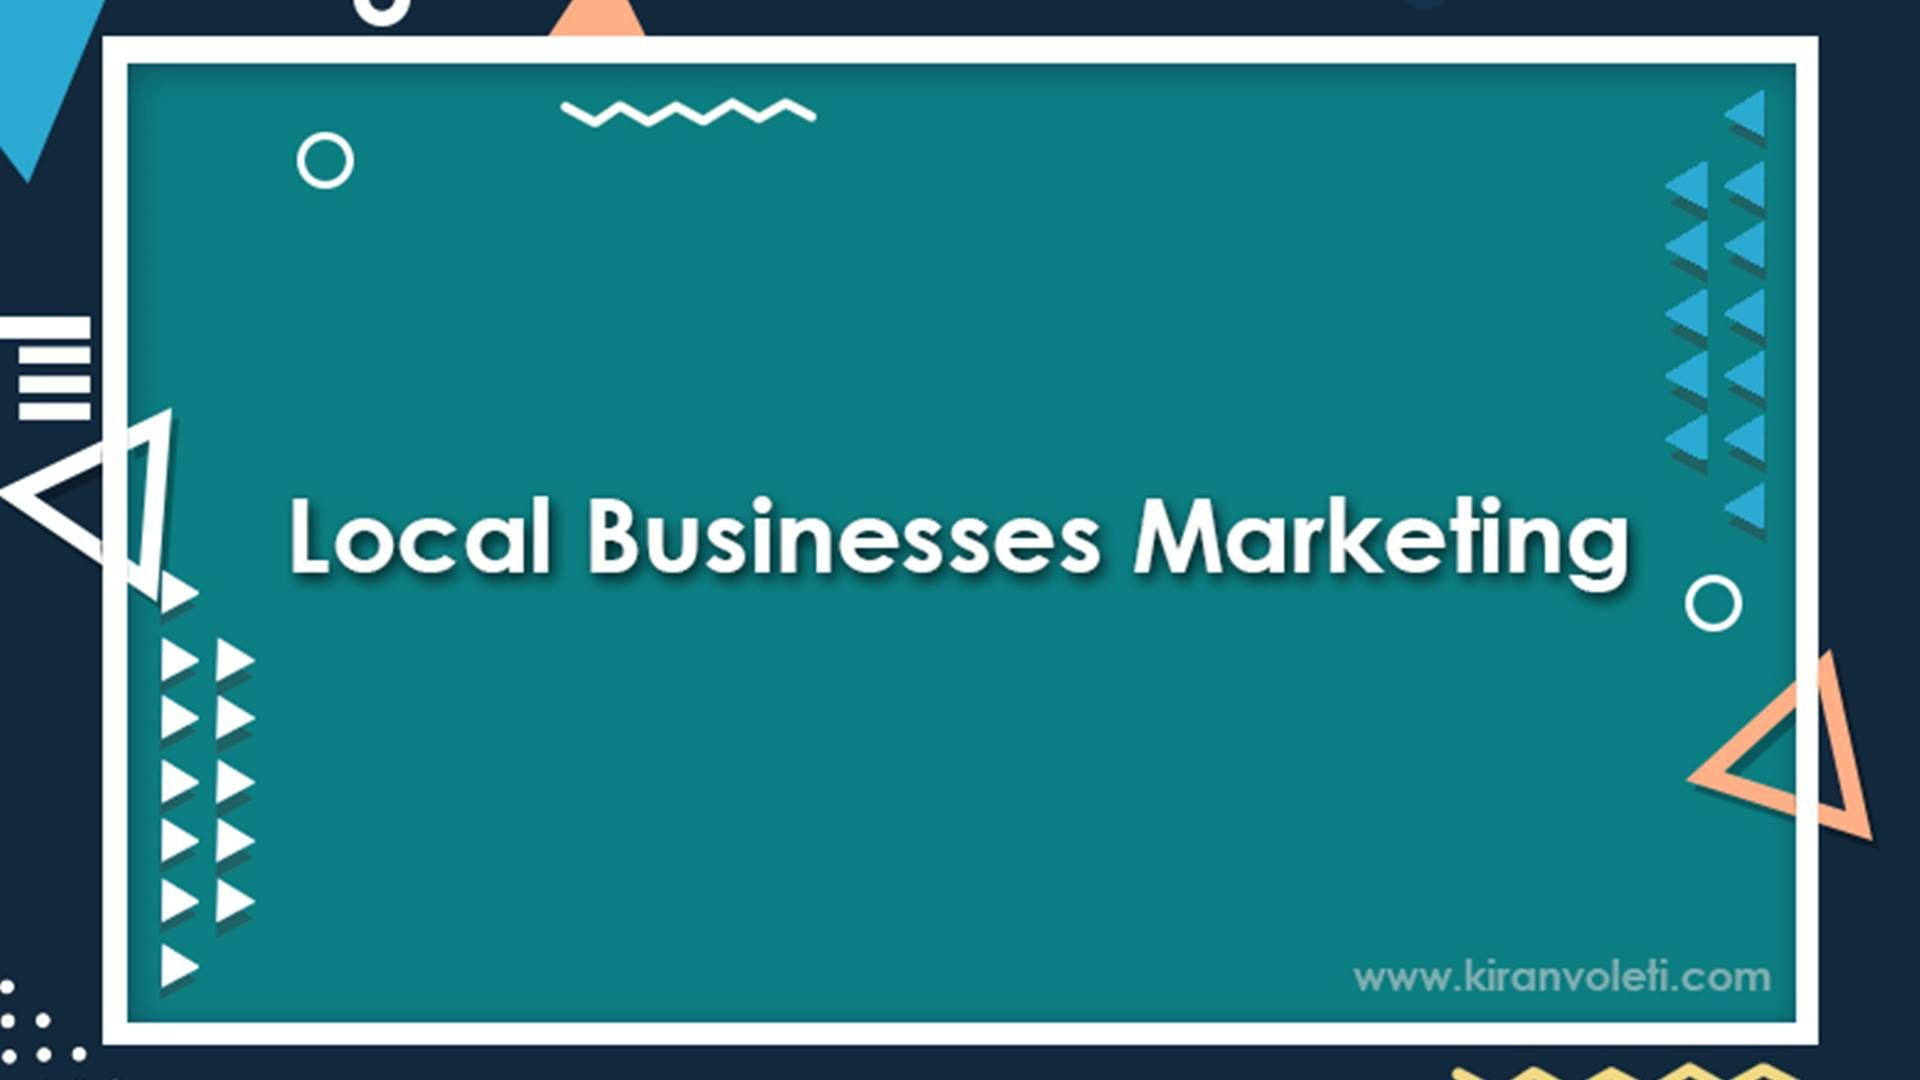 Local Businesses Marketing